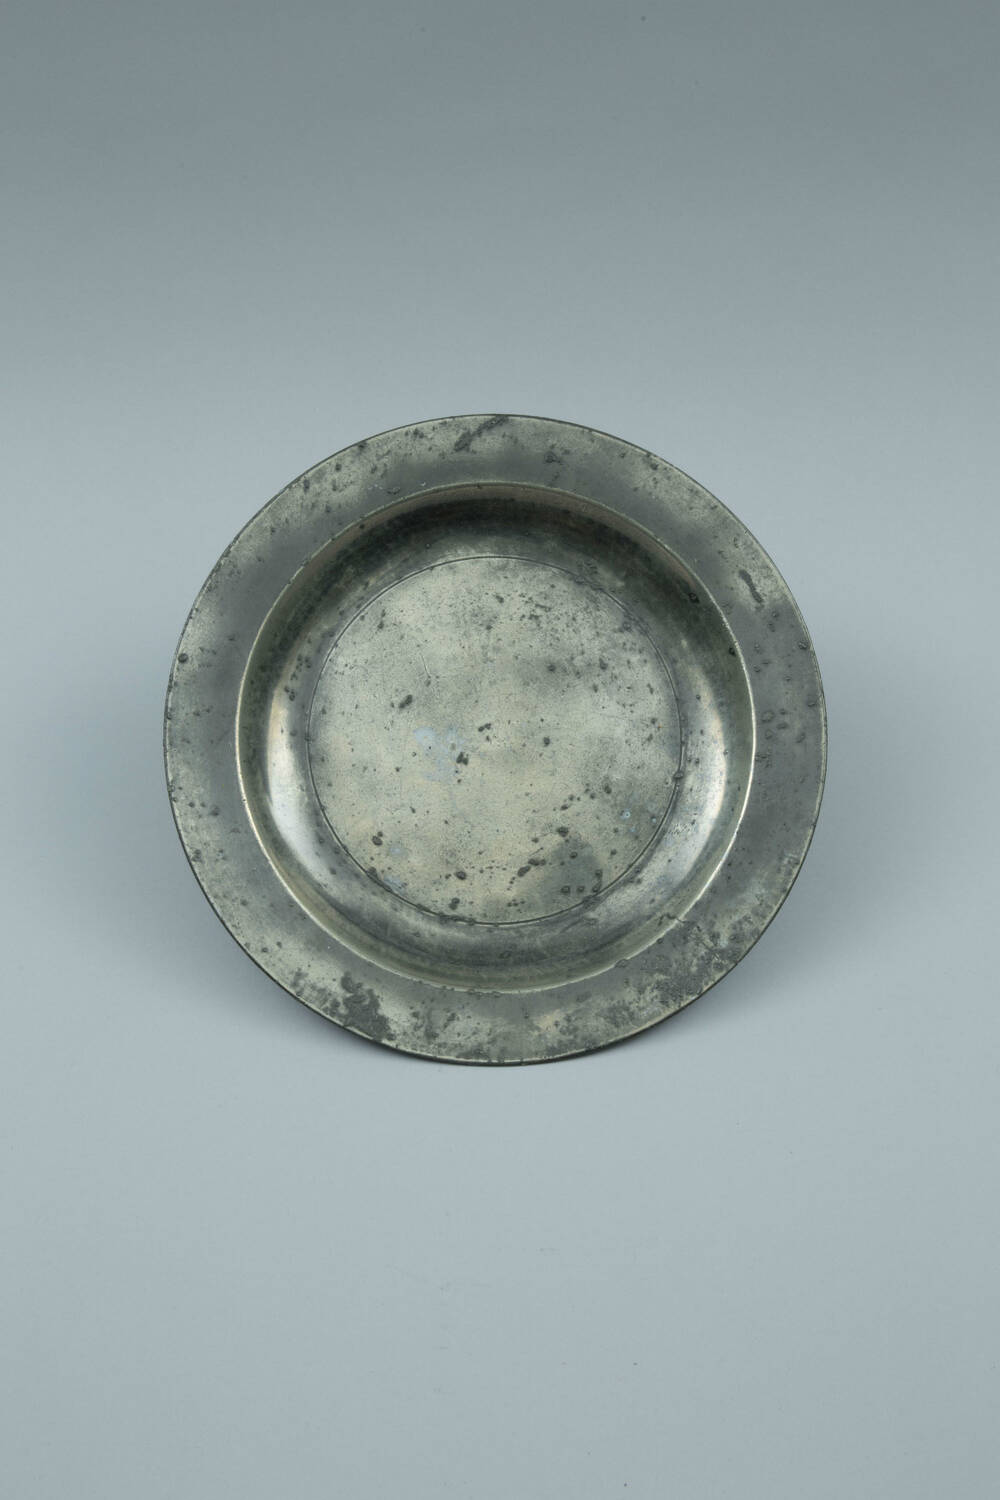 A pewter plate from Culross